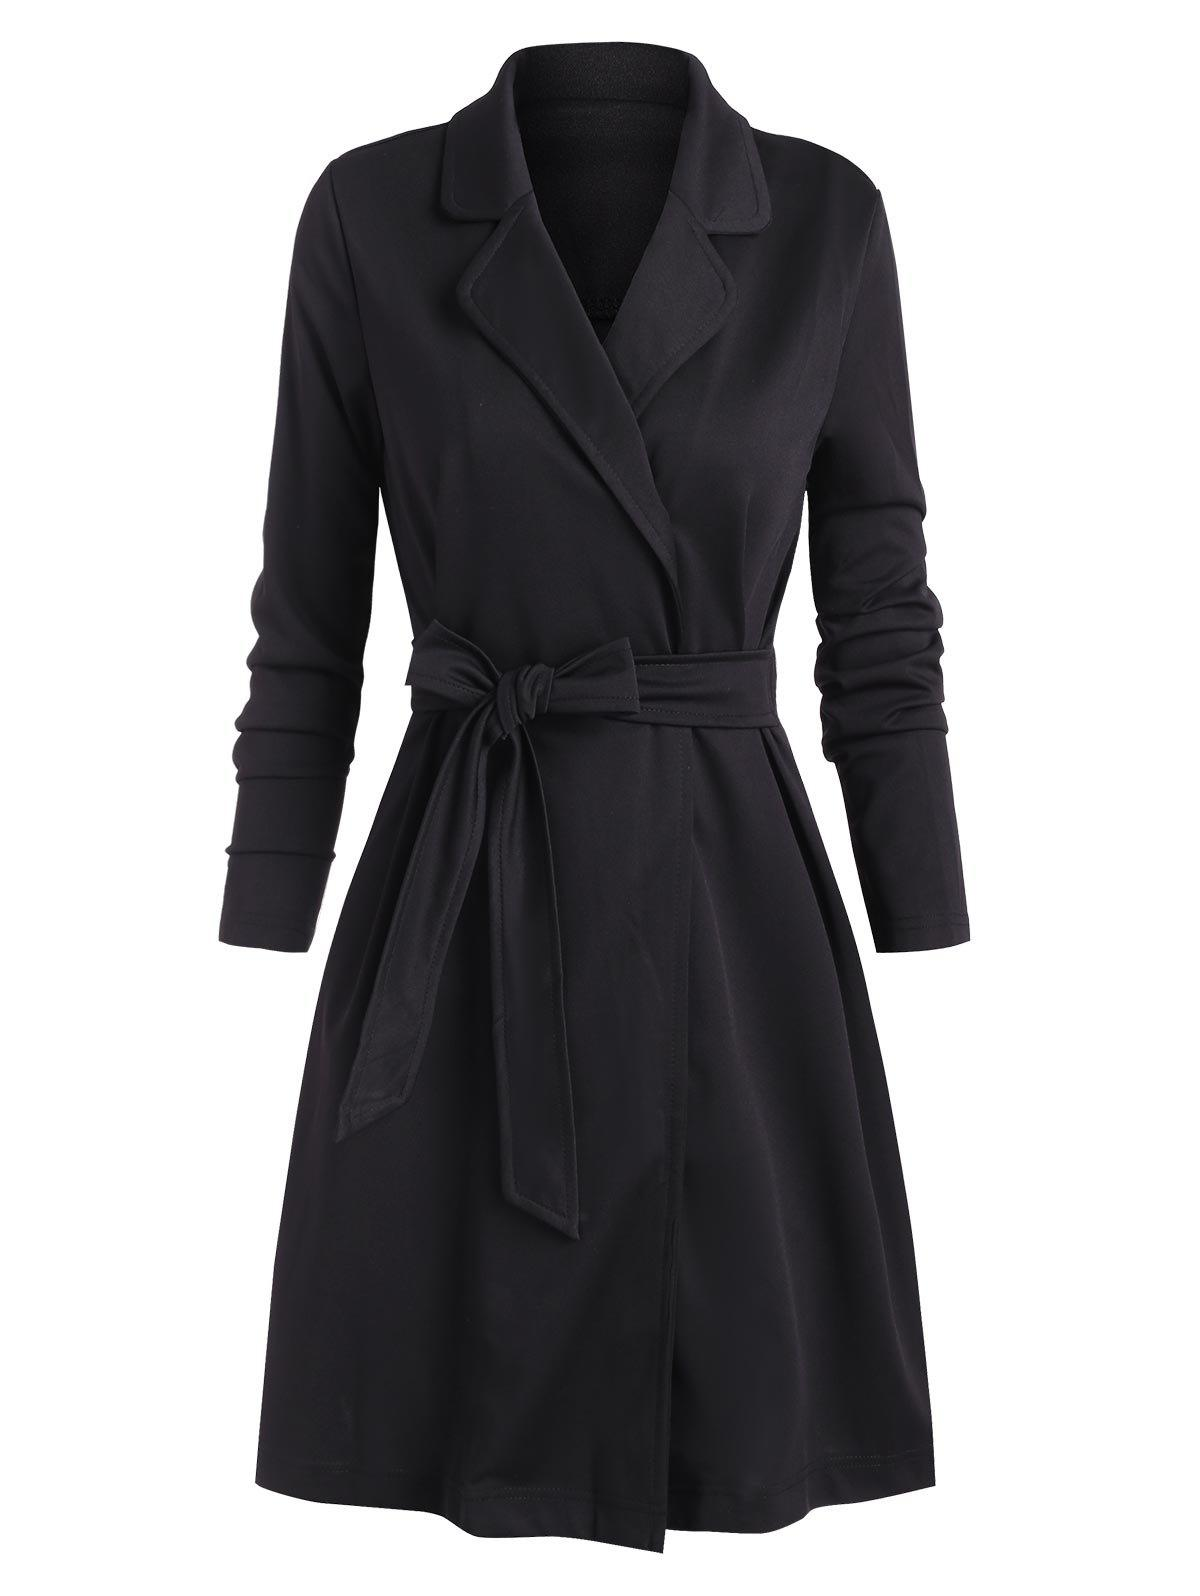 Shop Tie Waist Lapel Solid Long Coat